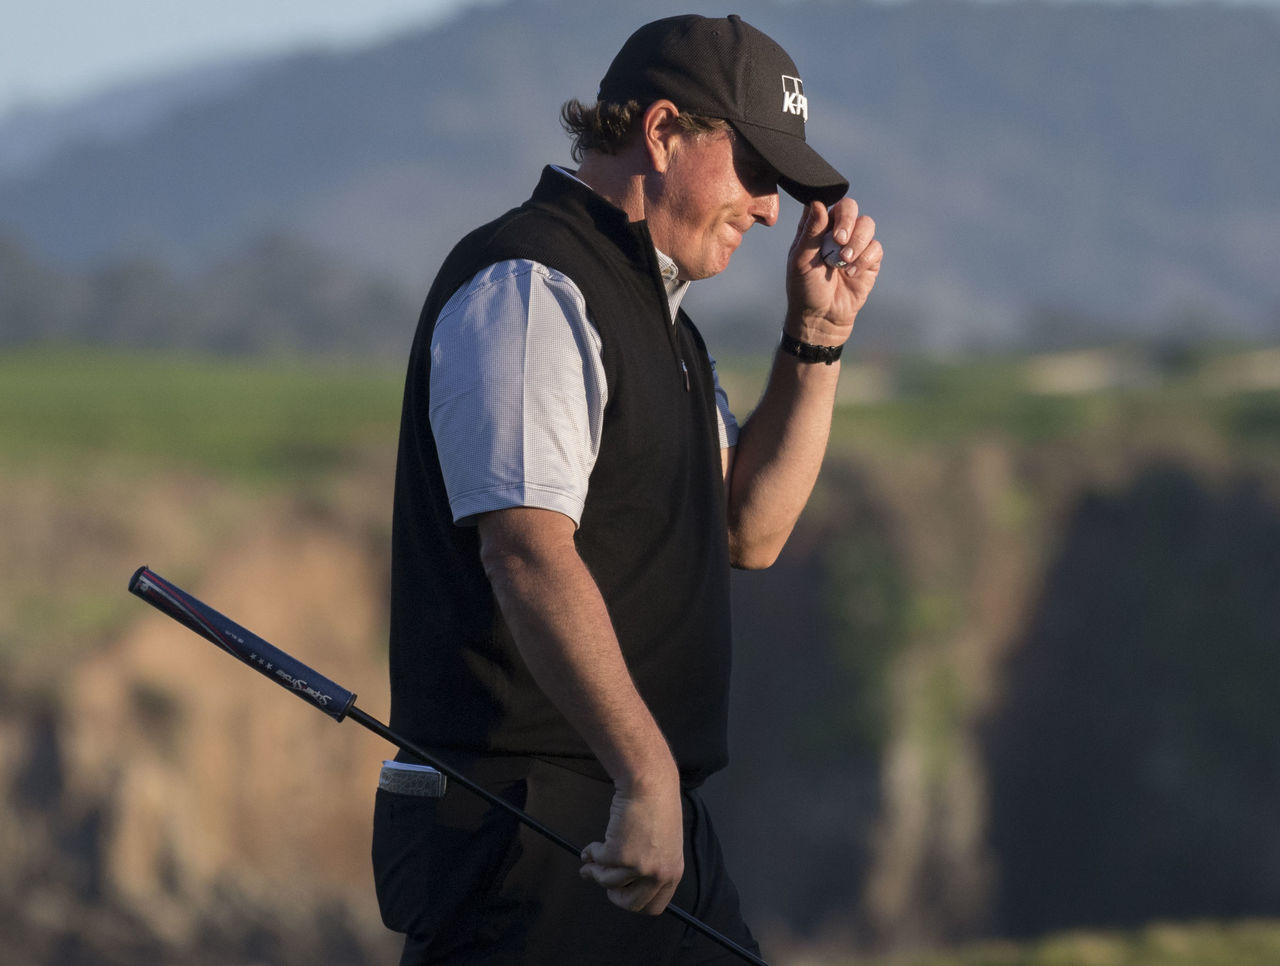 Cropped 2017 02 12t023513z 76103284 nocid rtrmadp 3 pga at t pebble beach pro am third round